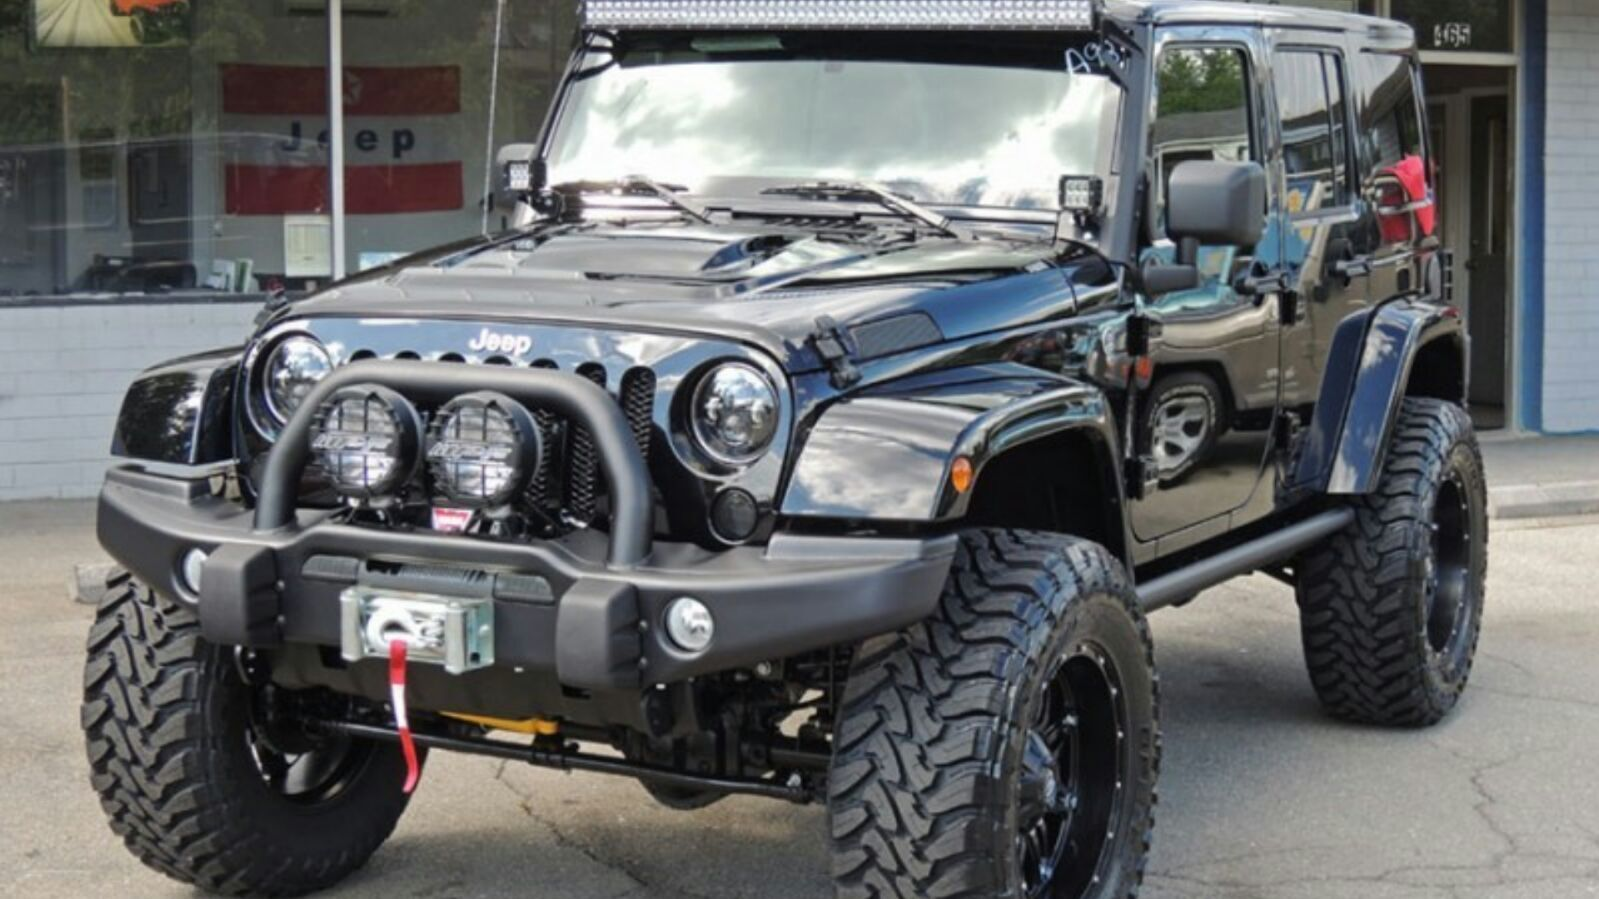 Aev Front Bumper on Dodge Ram 2500 Patriot